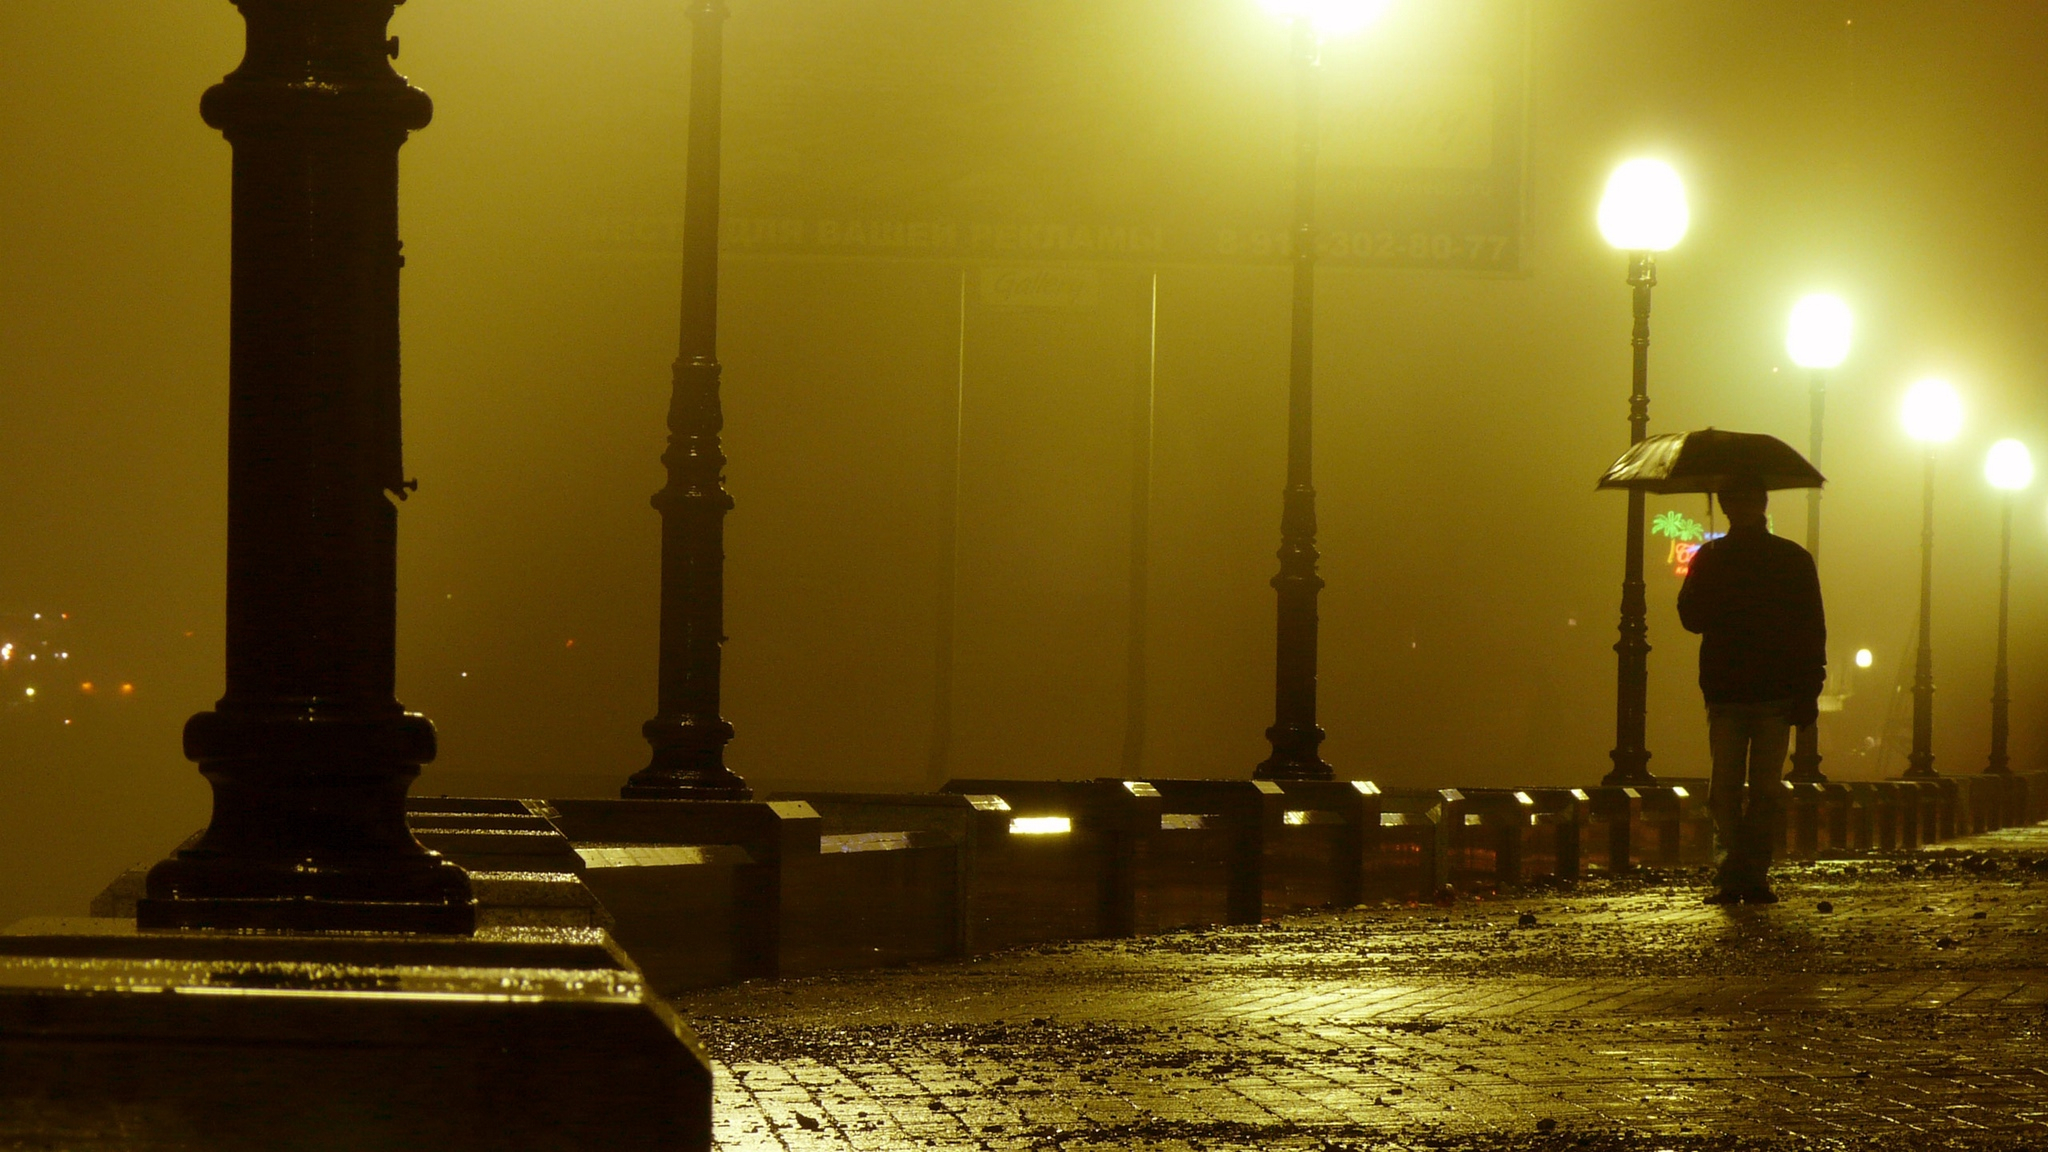 download wallpaper 2048x1152 road, bridge, rain, night ultrawide